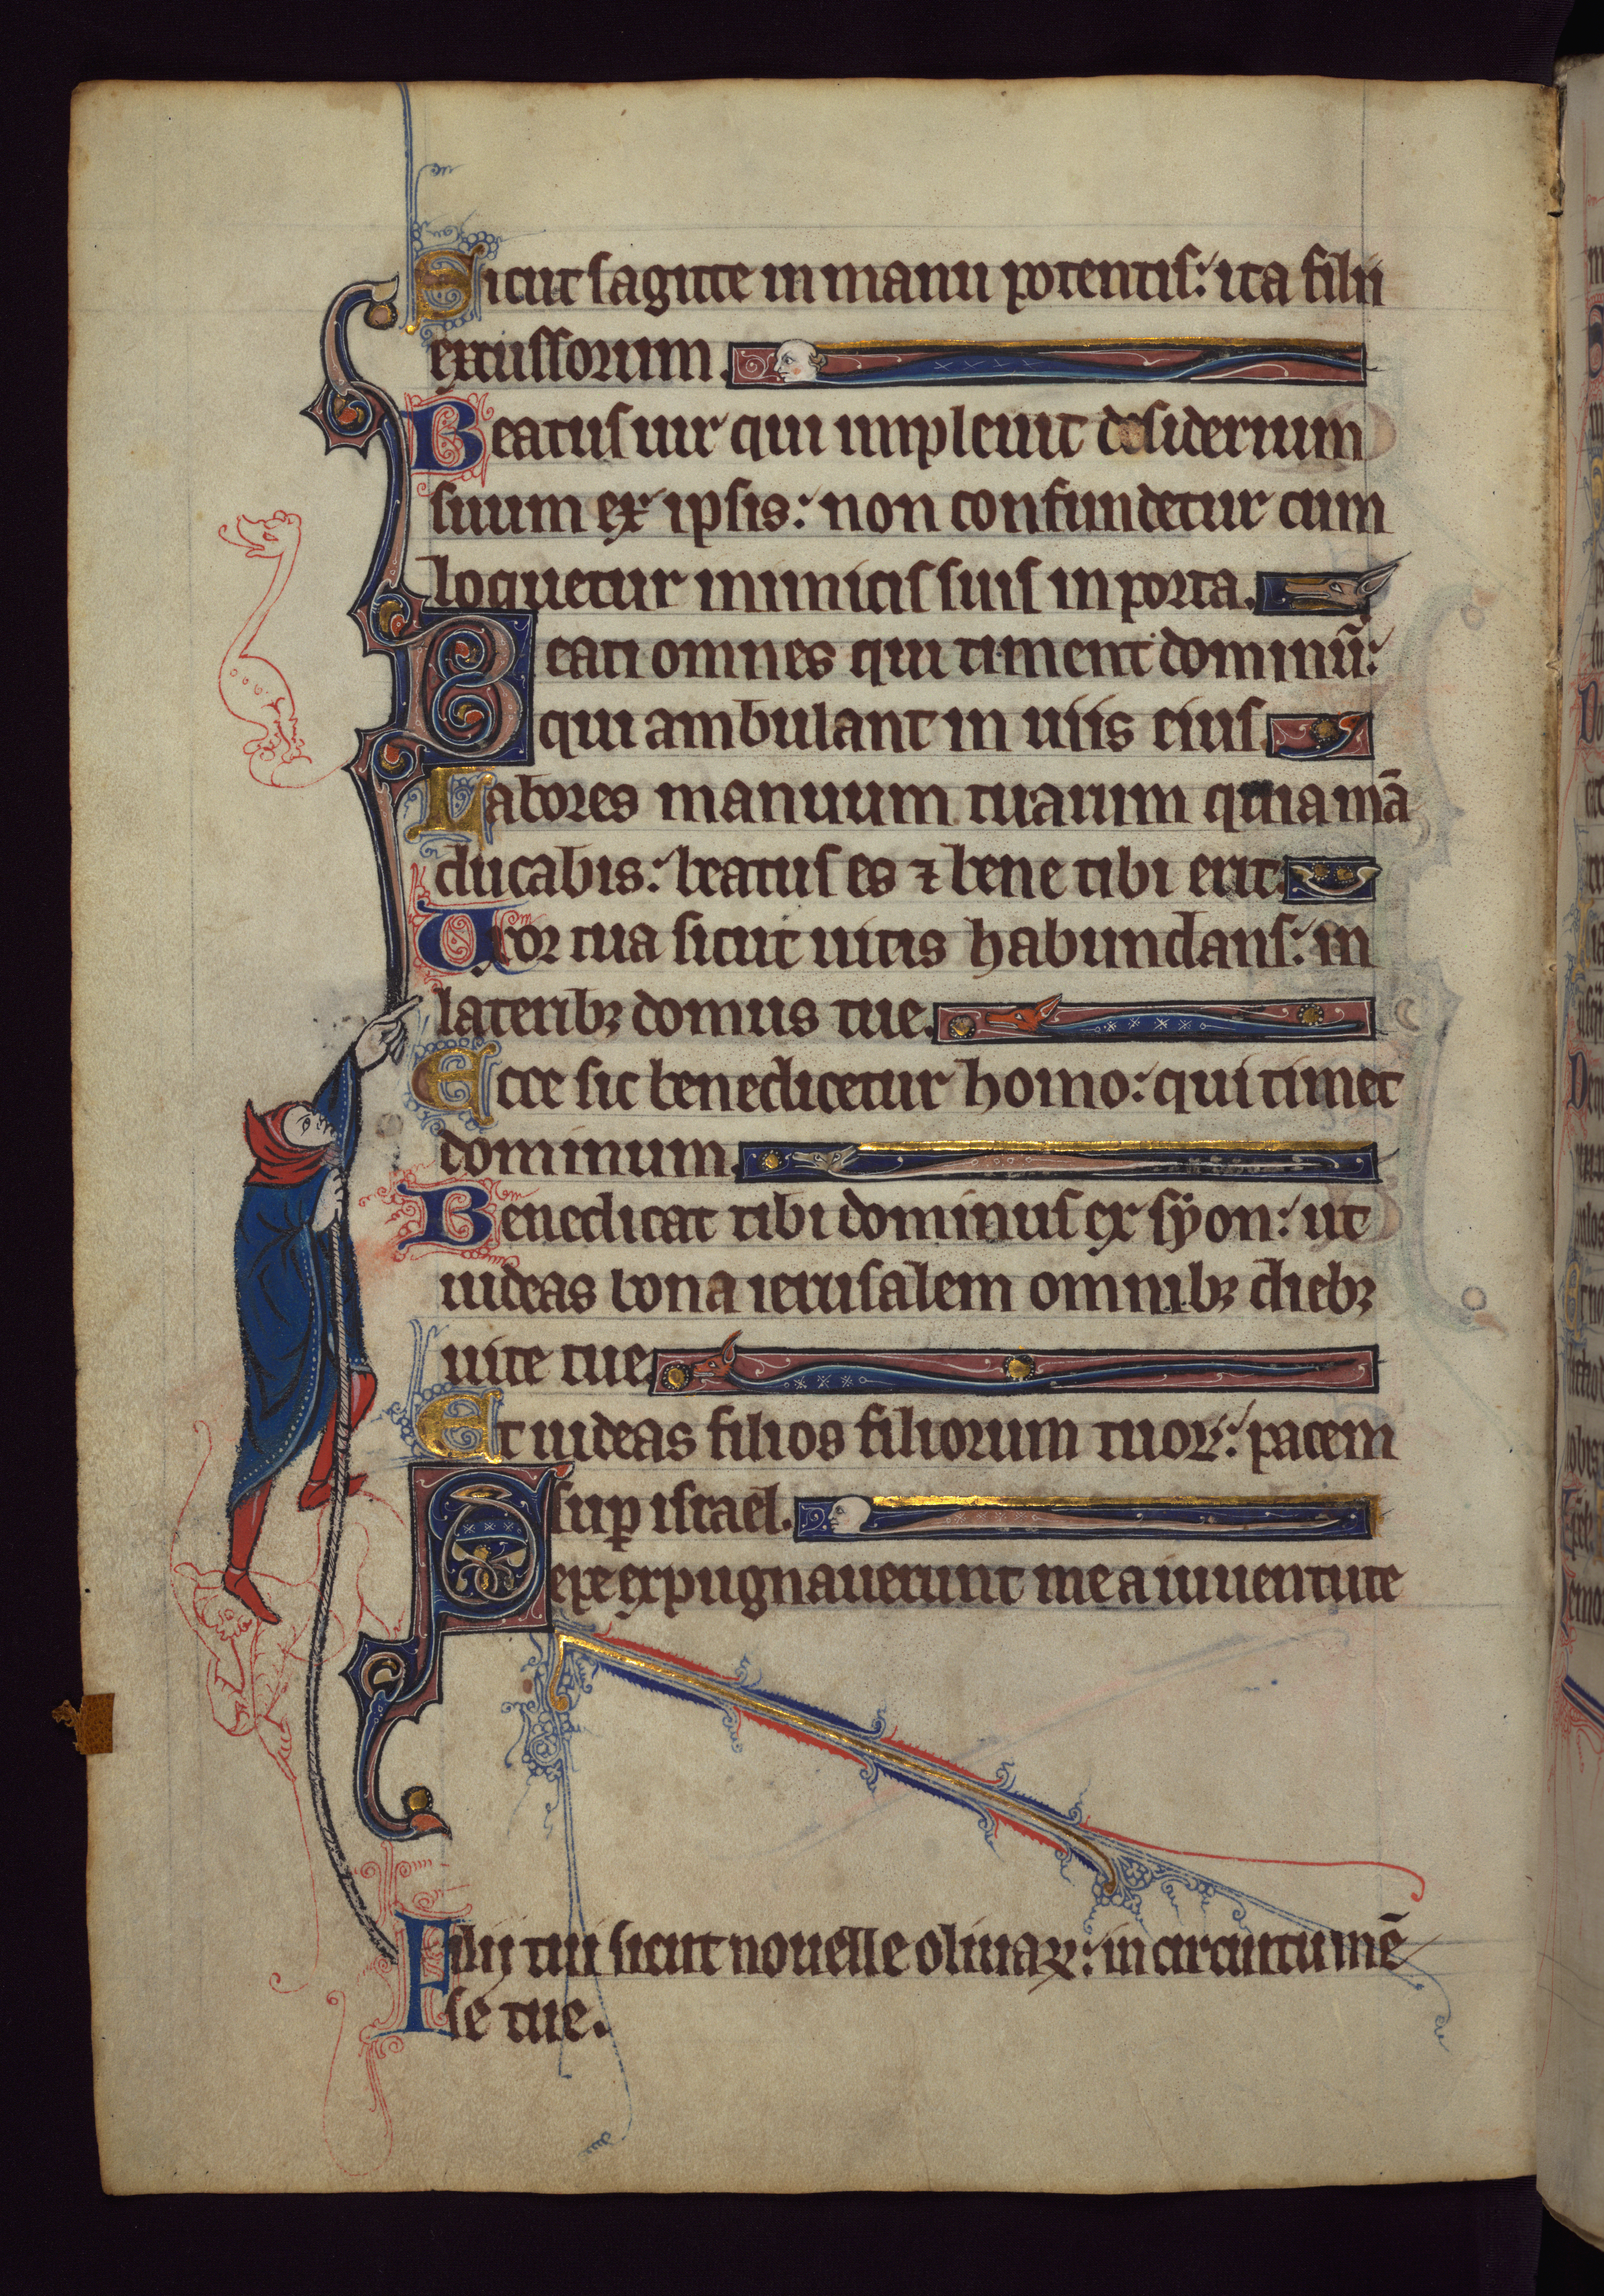 Courtesy the Walters Art Museum. Click on the image to magnify.